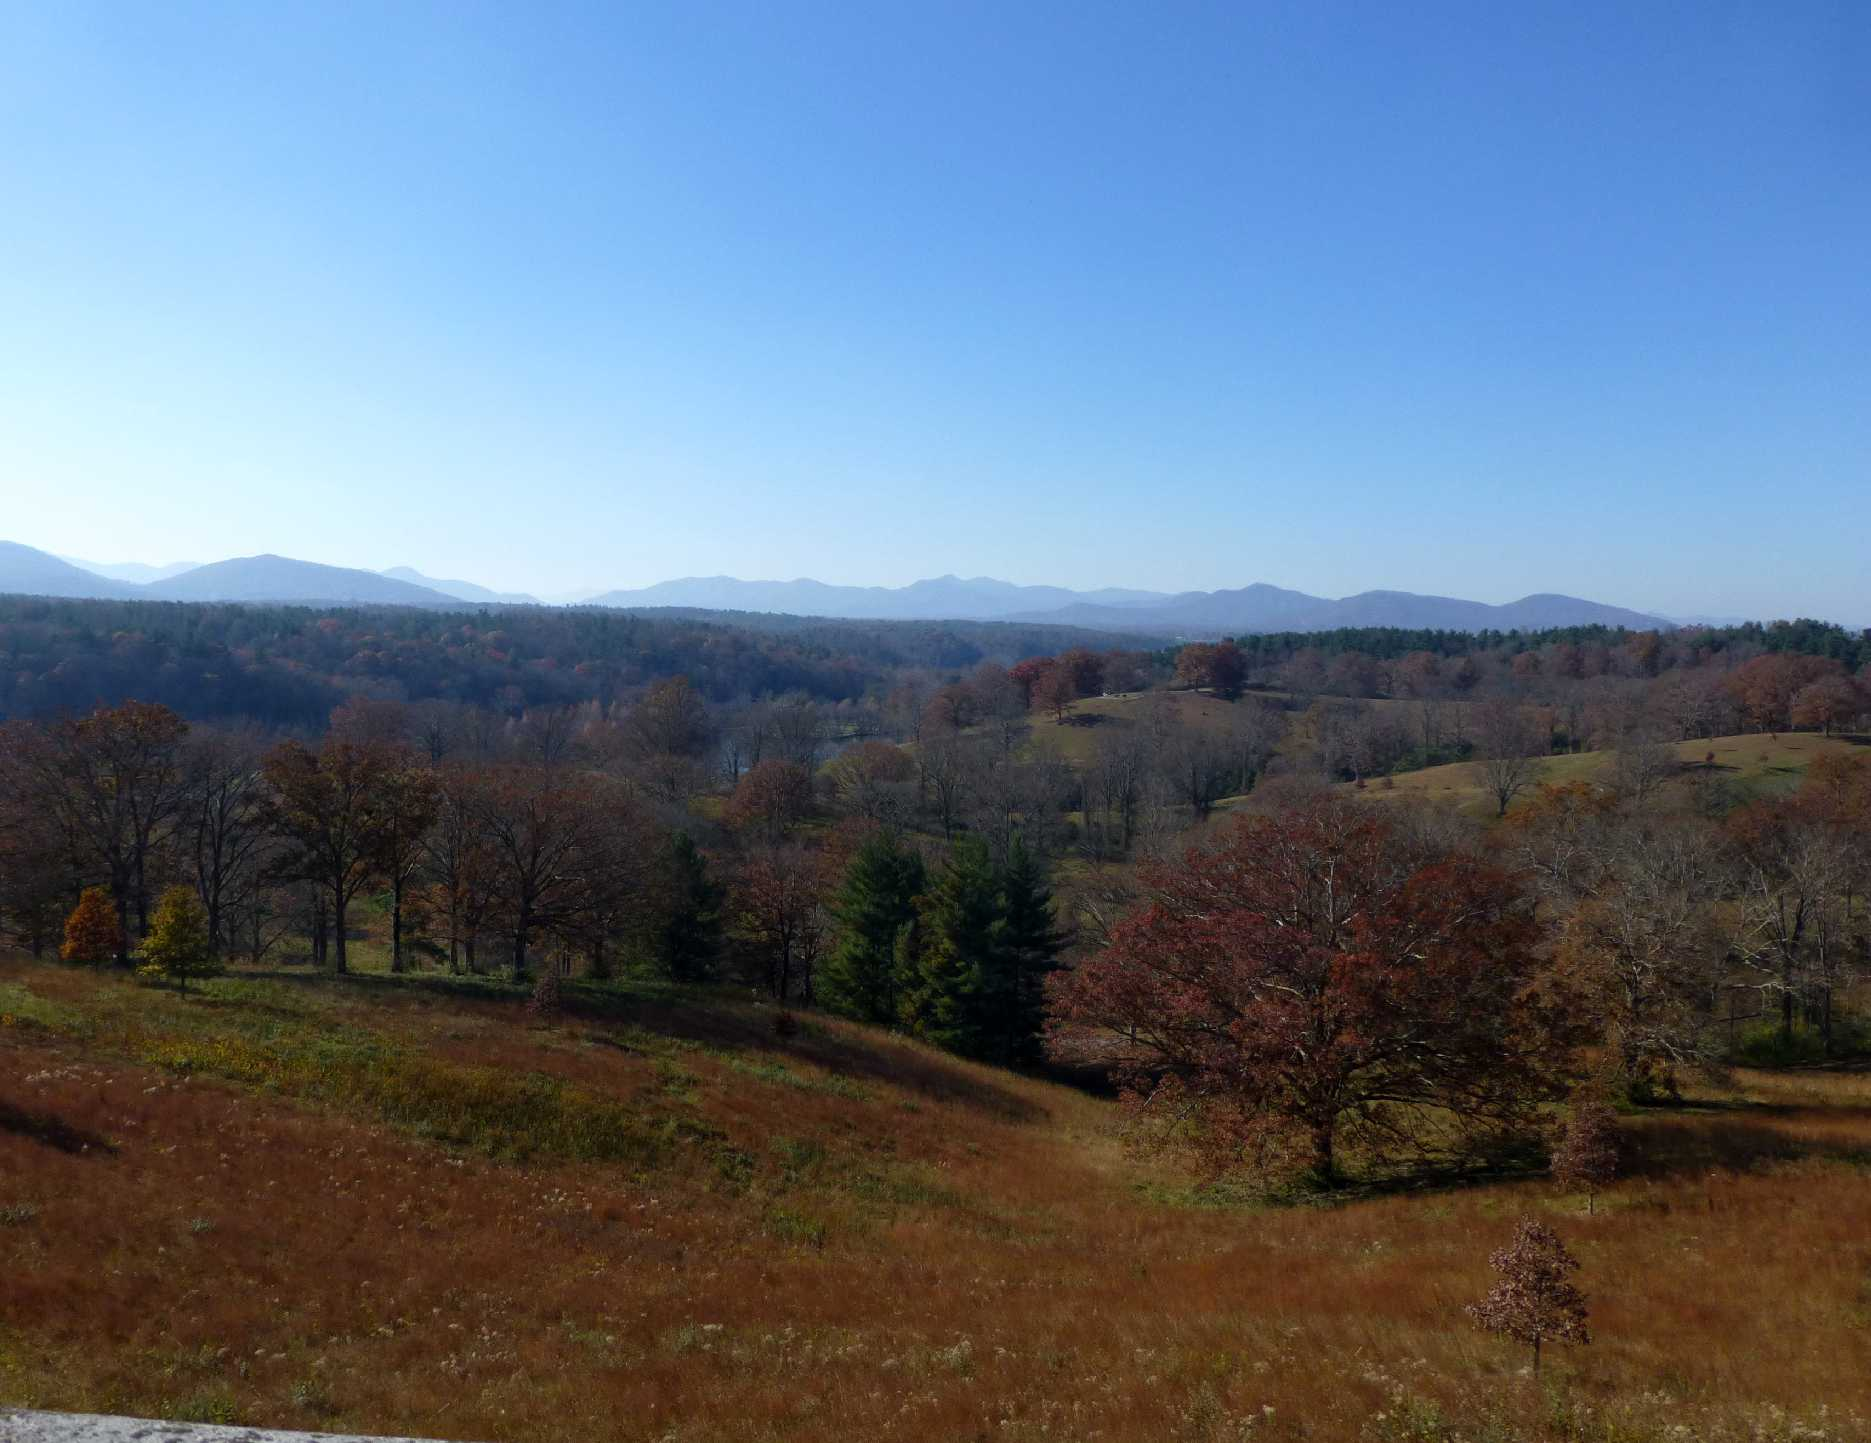 View looking out onto an expansive hilly and wooded landscape with mountains in the distance